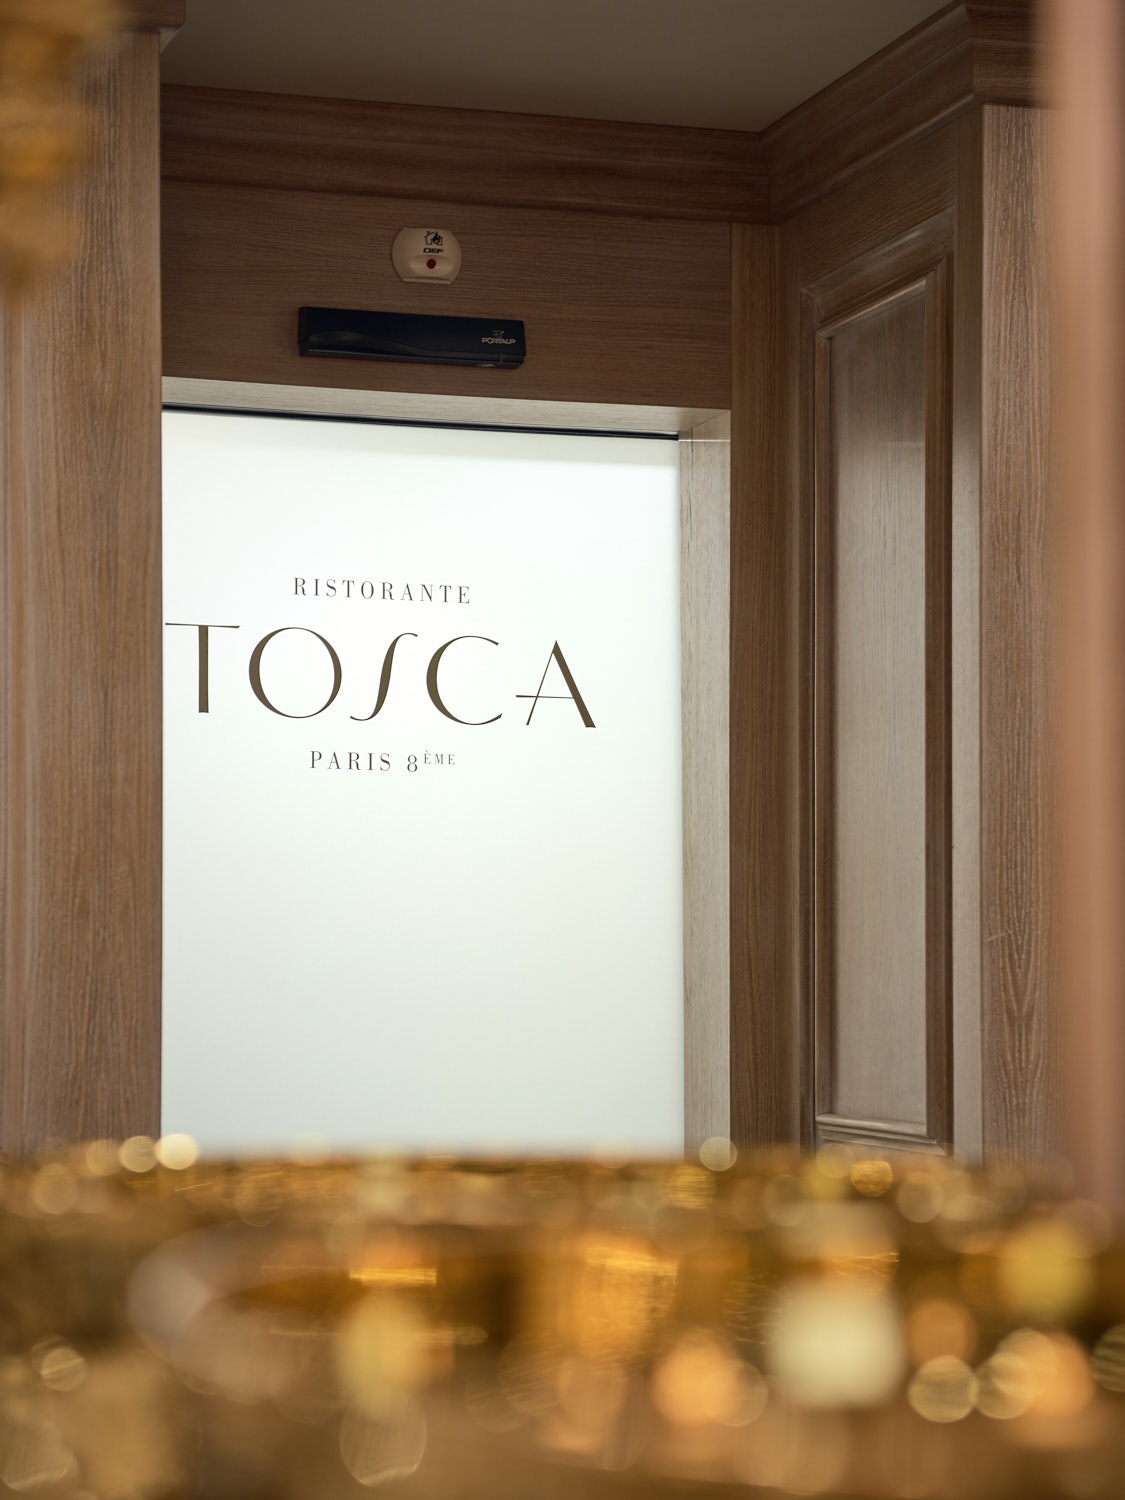 Le Tosca Paris - Hotel Splendide Royal - ISG